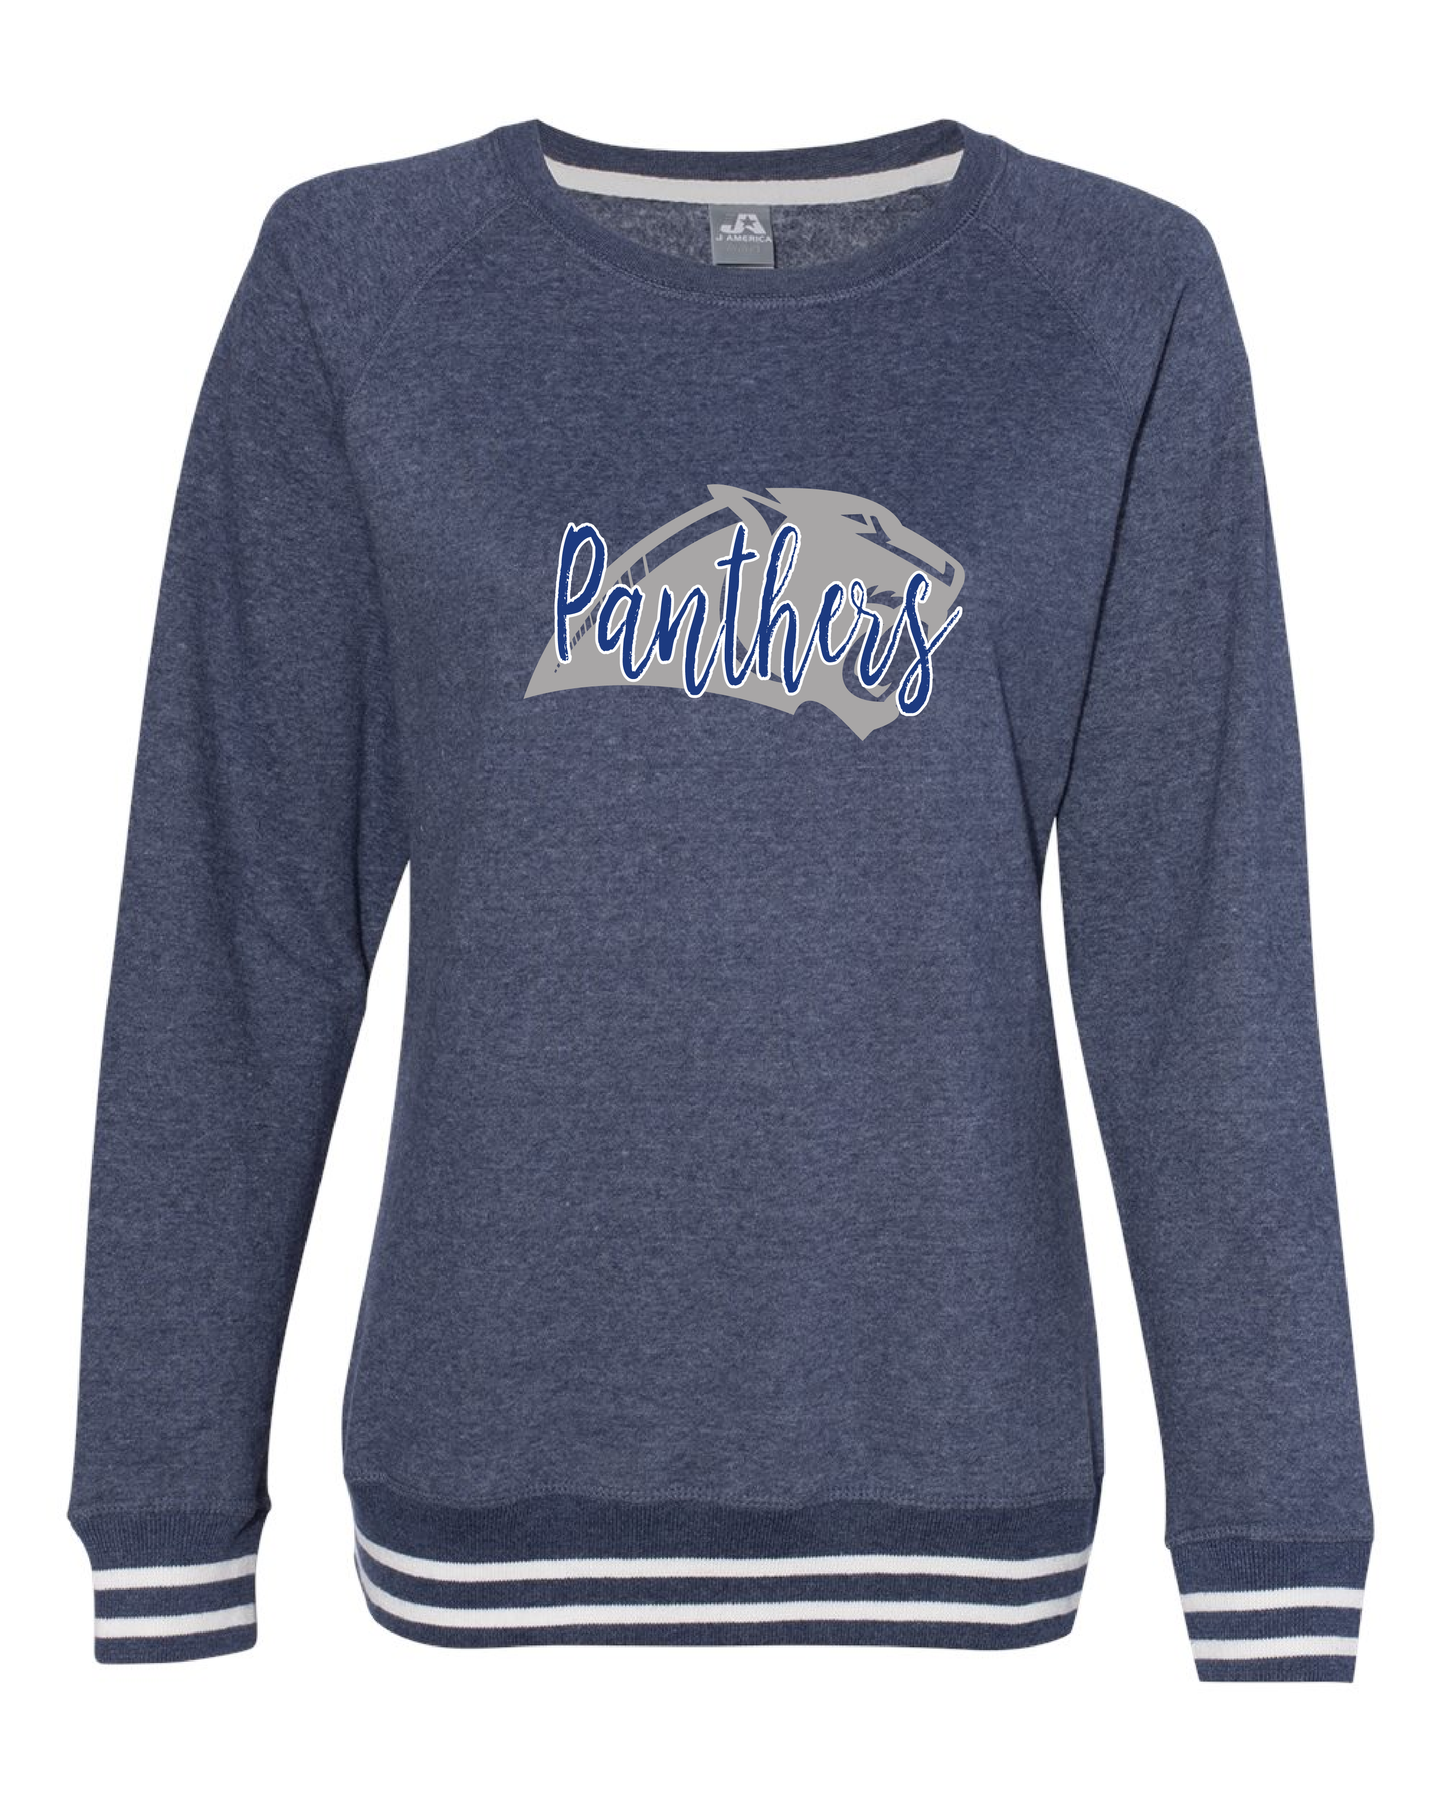 Panorama Boosters-J. America - Women's Relay Crewneck Sweatshirt - 8652 Navy